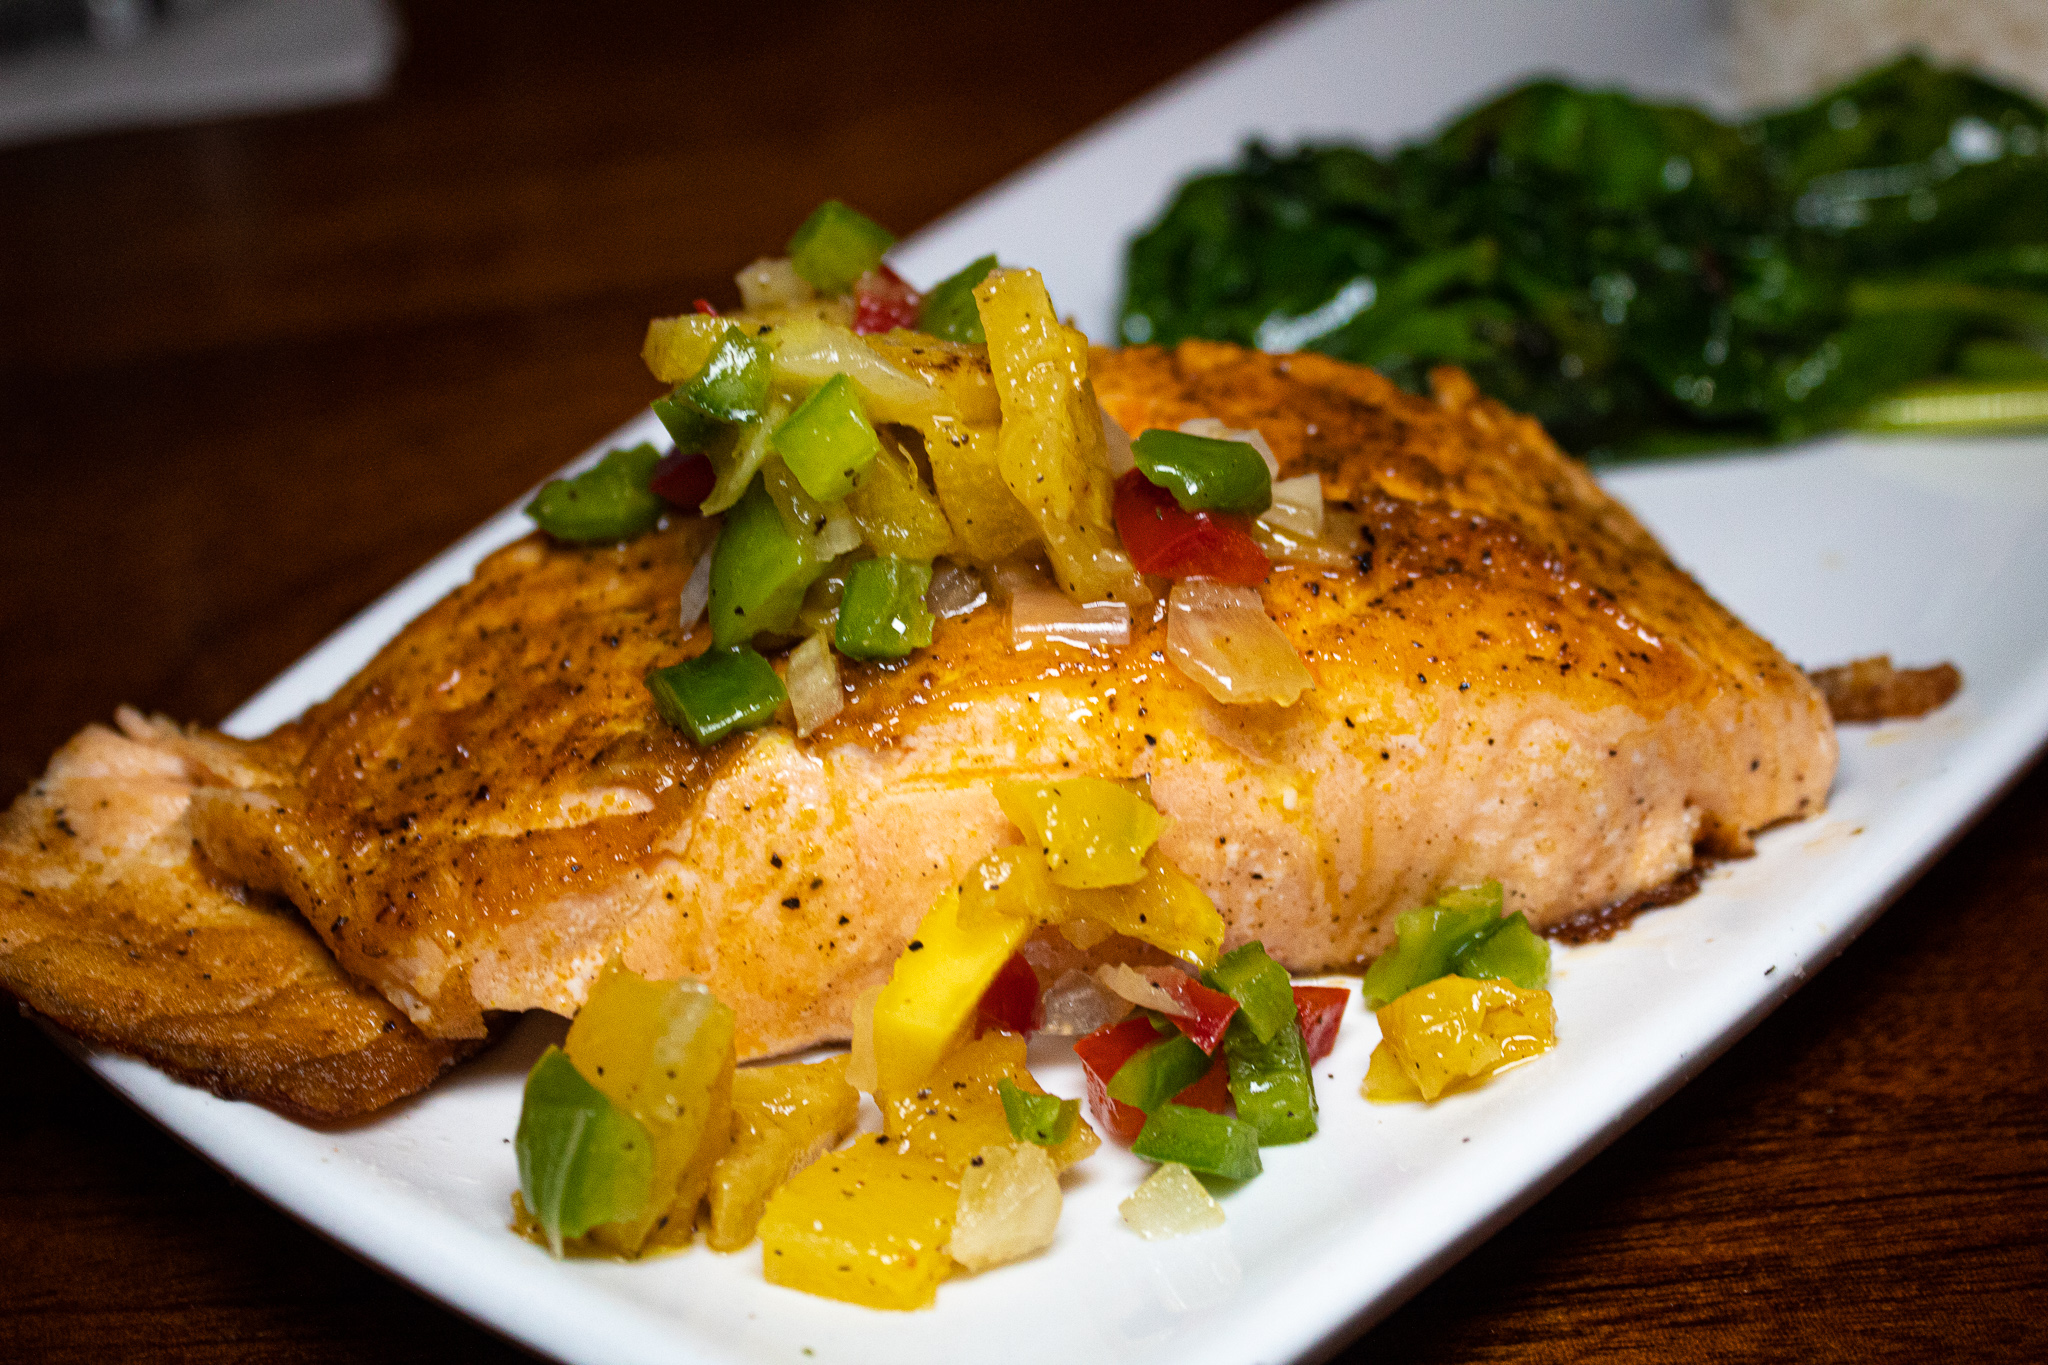 SPICE DUSTED SALMON -  Coconut Scallions Basmati Rice, Sautéed Spinach & Mango Pineapple Salsa